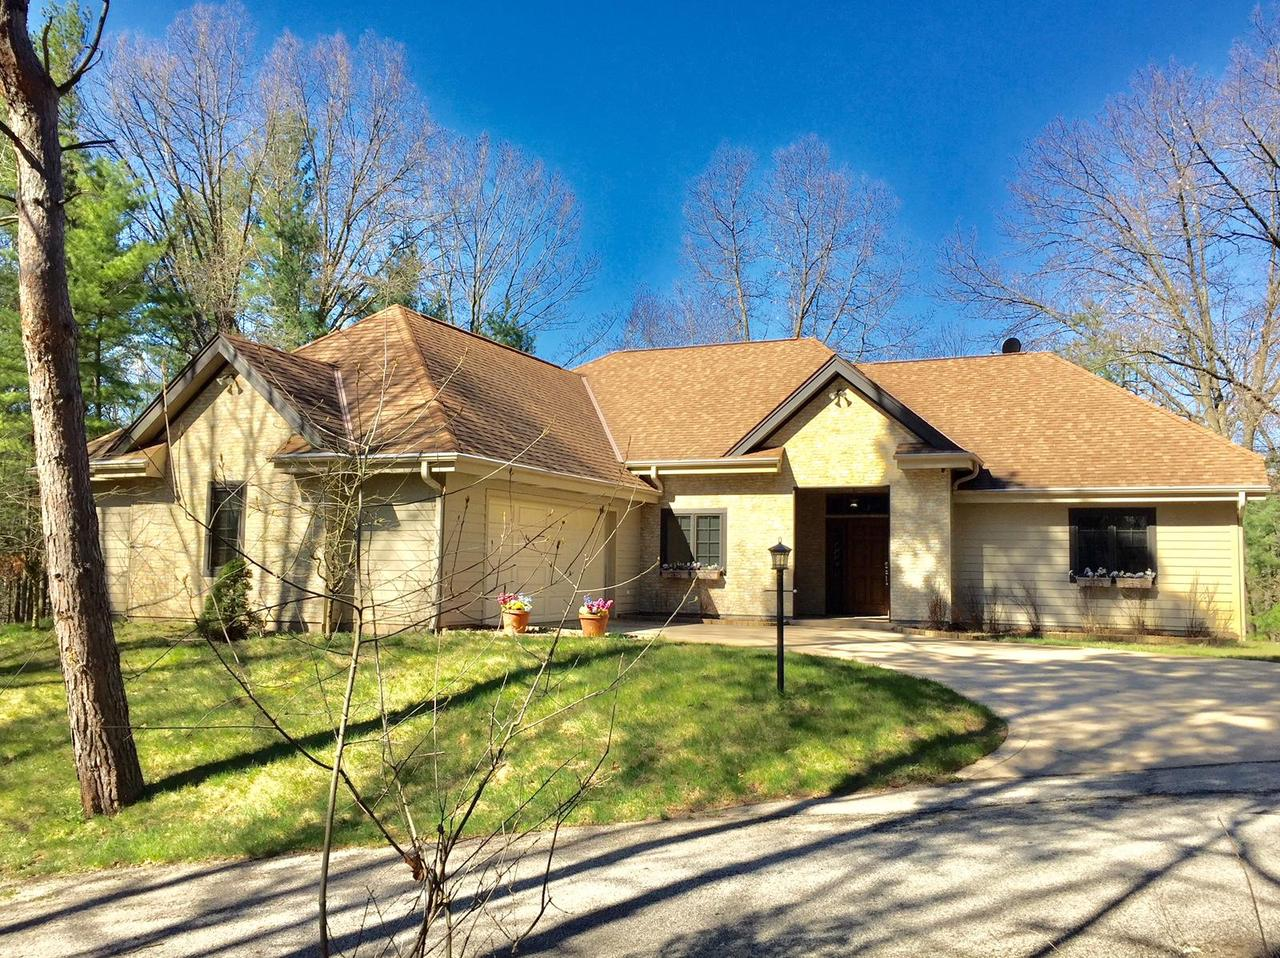 Stunning 4 BR, 3.5 BA custom built ranch home with finished walk-out lower level is located on an incredible 5 acre parcel located in the desirable Forest at Farmington gated community. Beautiful wooded lot with clearance around the home and a winding creek running through the property. Impressive foyer with covered entry sets the tone for the rest of the home! Great room features a corner FP and French doors leading to a sunroom that overlooks the yard. Kitchen has huge walk-in pantry, and spacious dining area! Split bedroom floor plan! 10 ft ceilings throughout! MBR has custom shelving in huge WIC, Master bath with jetted tub and steam shower. BR 2 and BR 3 are very nice size with built-in murphy in BR 3. Lower level features Family Rm, BR 4 and full bath.